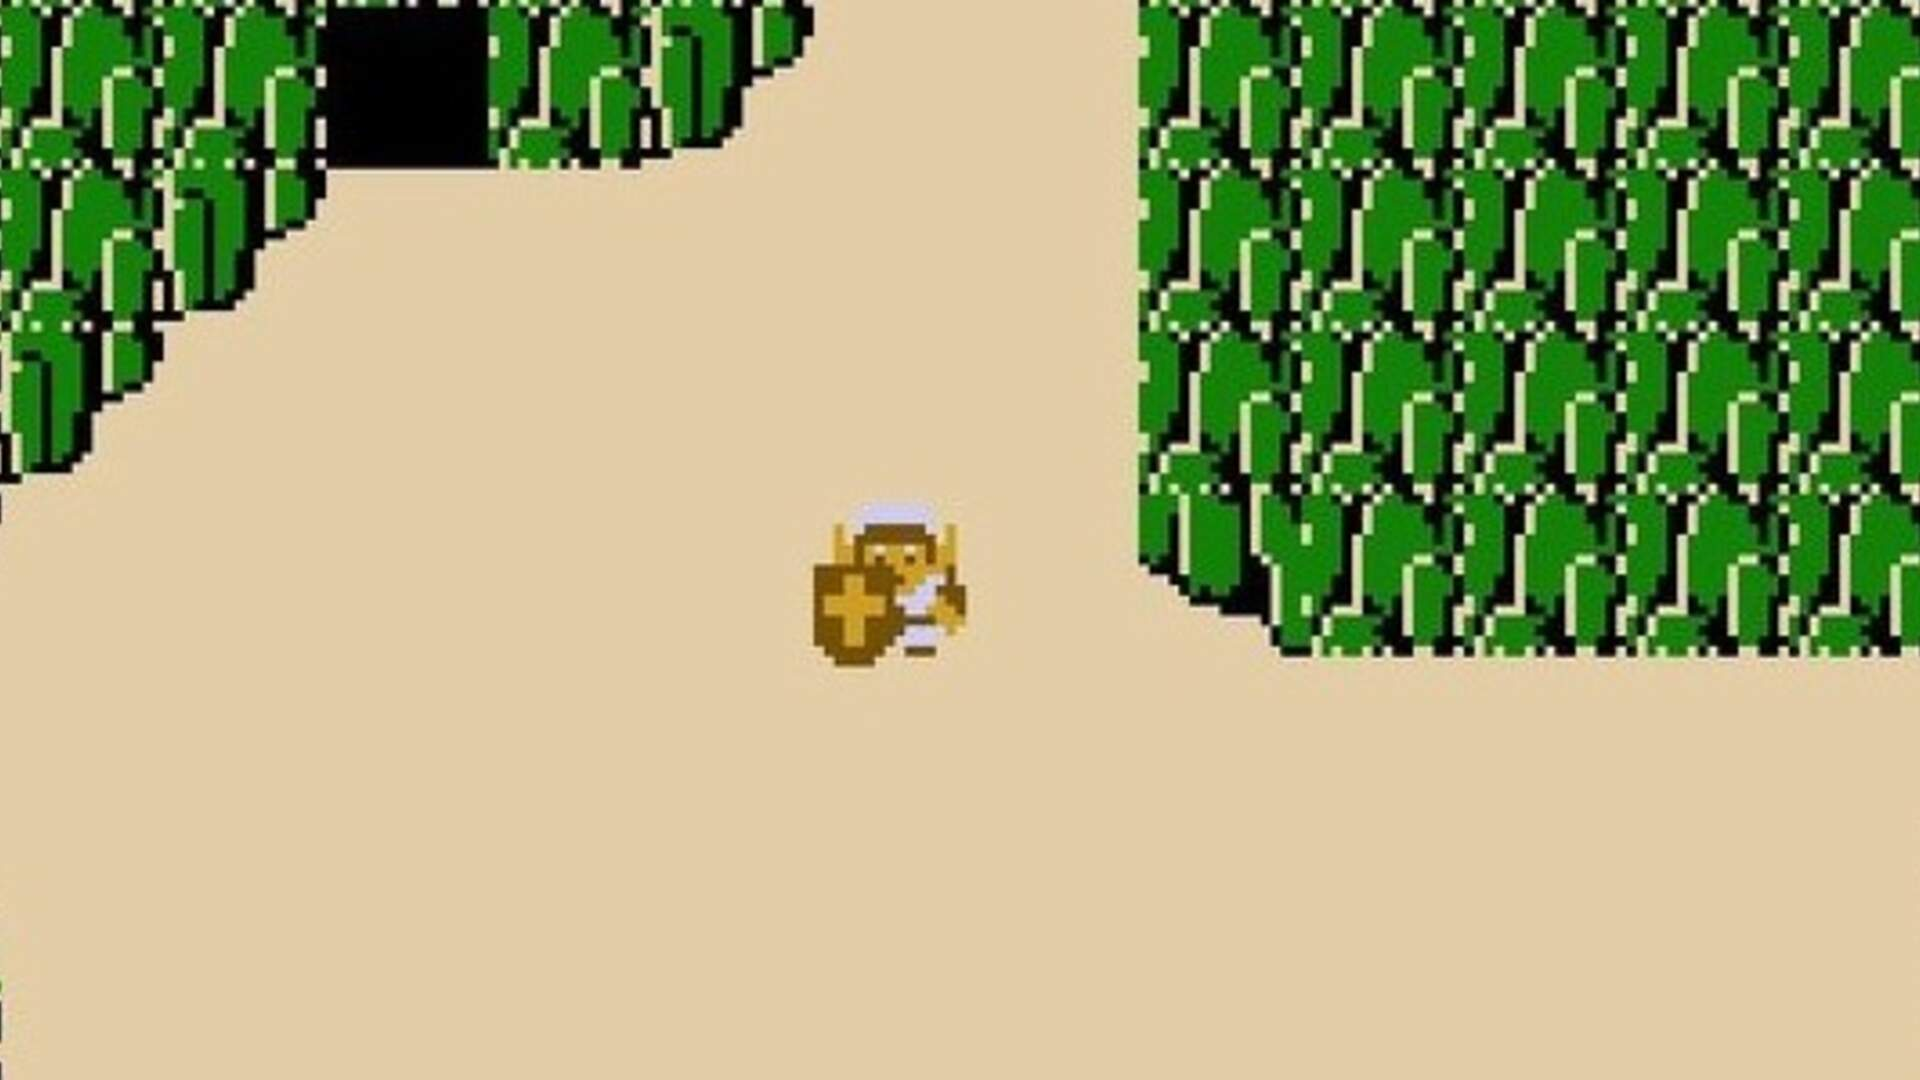 Easy 'ROM Hack' Version of The Legend of Zelda Added to Nintendo Switch Online NES Collection